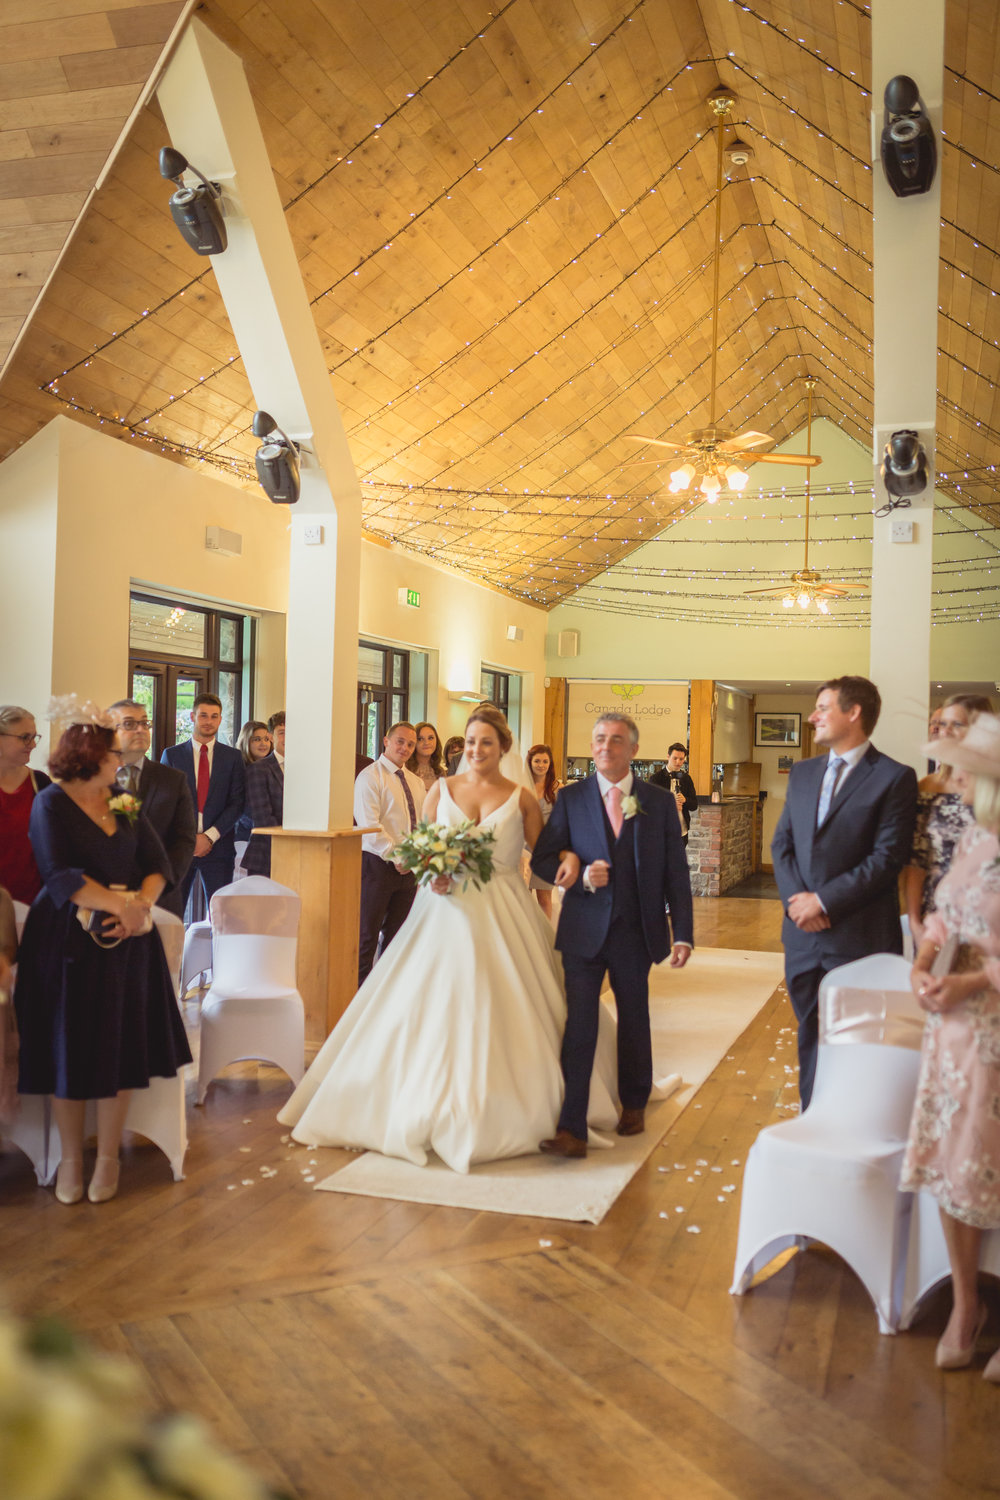 Bride and her father walking down the aisle, South Wales wedding photographer